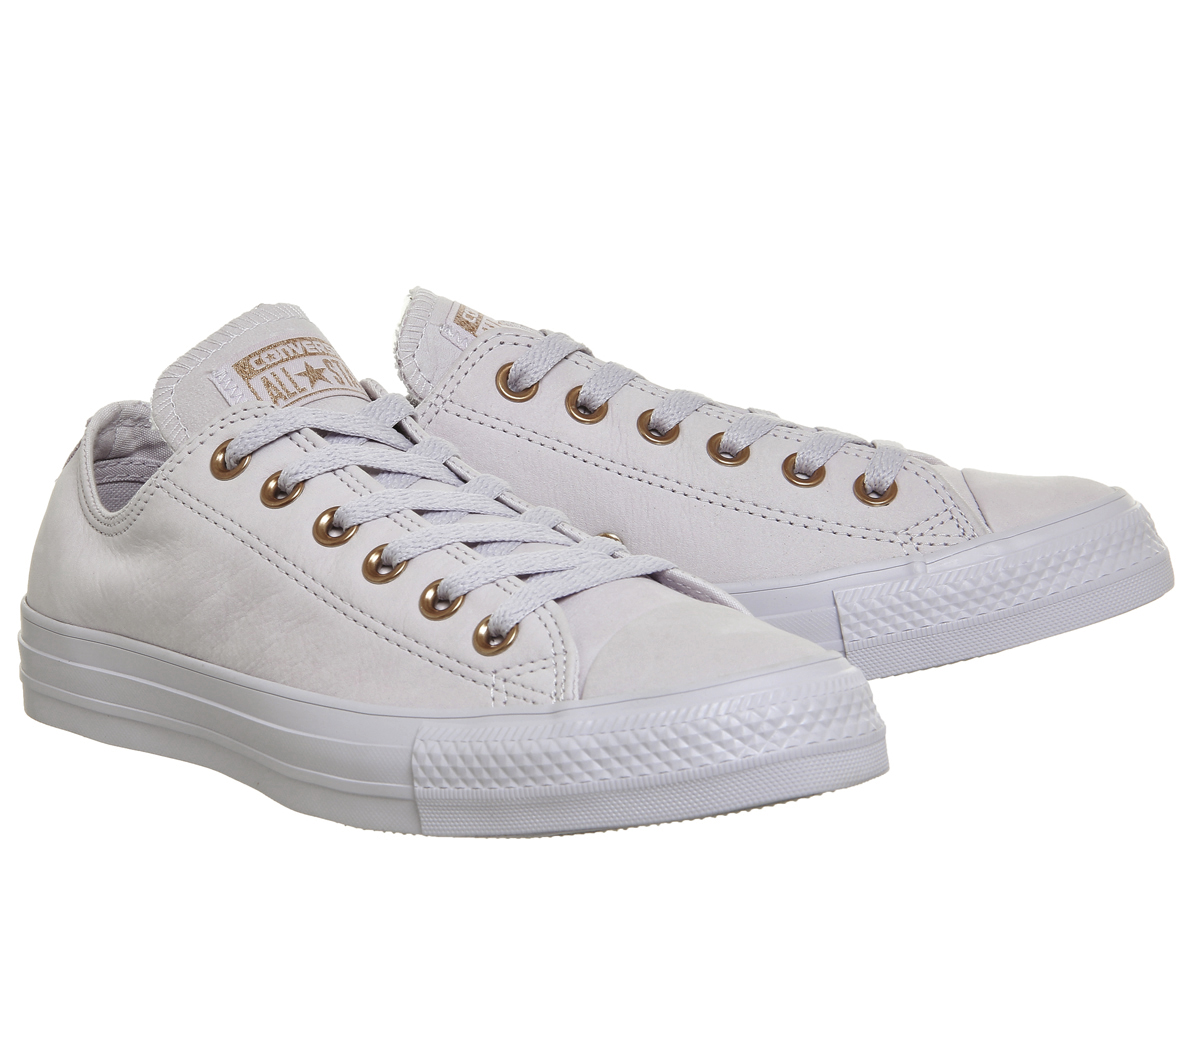 530f3fbb6f09 Womens Converse All Star Low Leather BARELY VIOLET ROSE GOLD ...